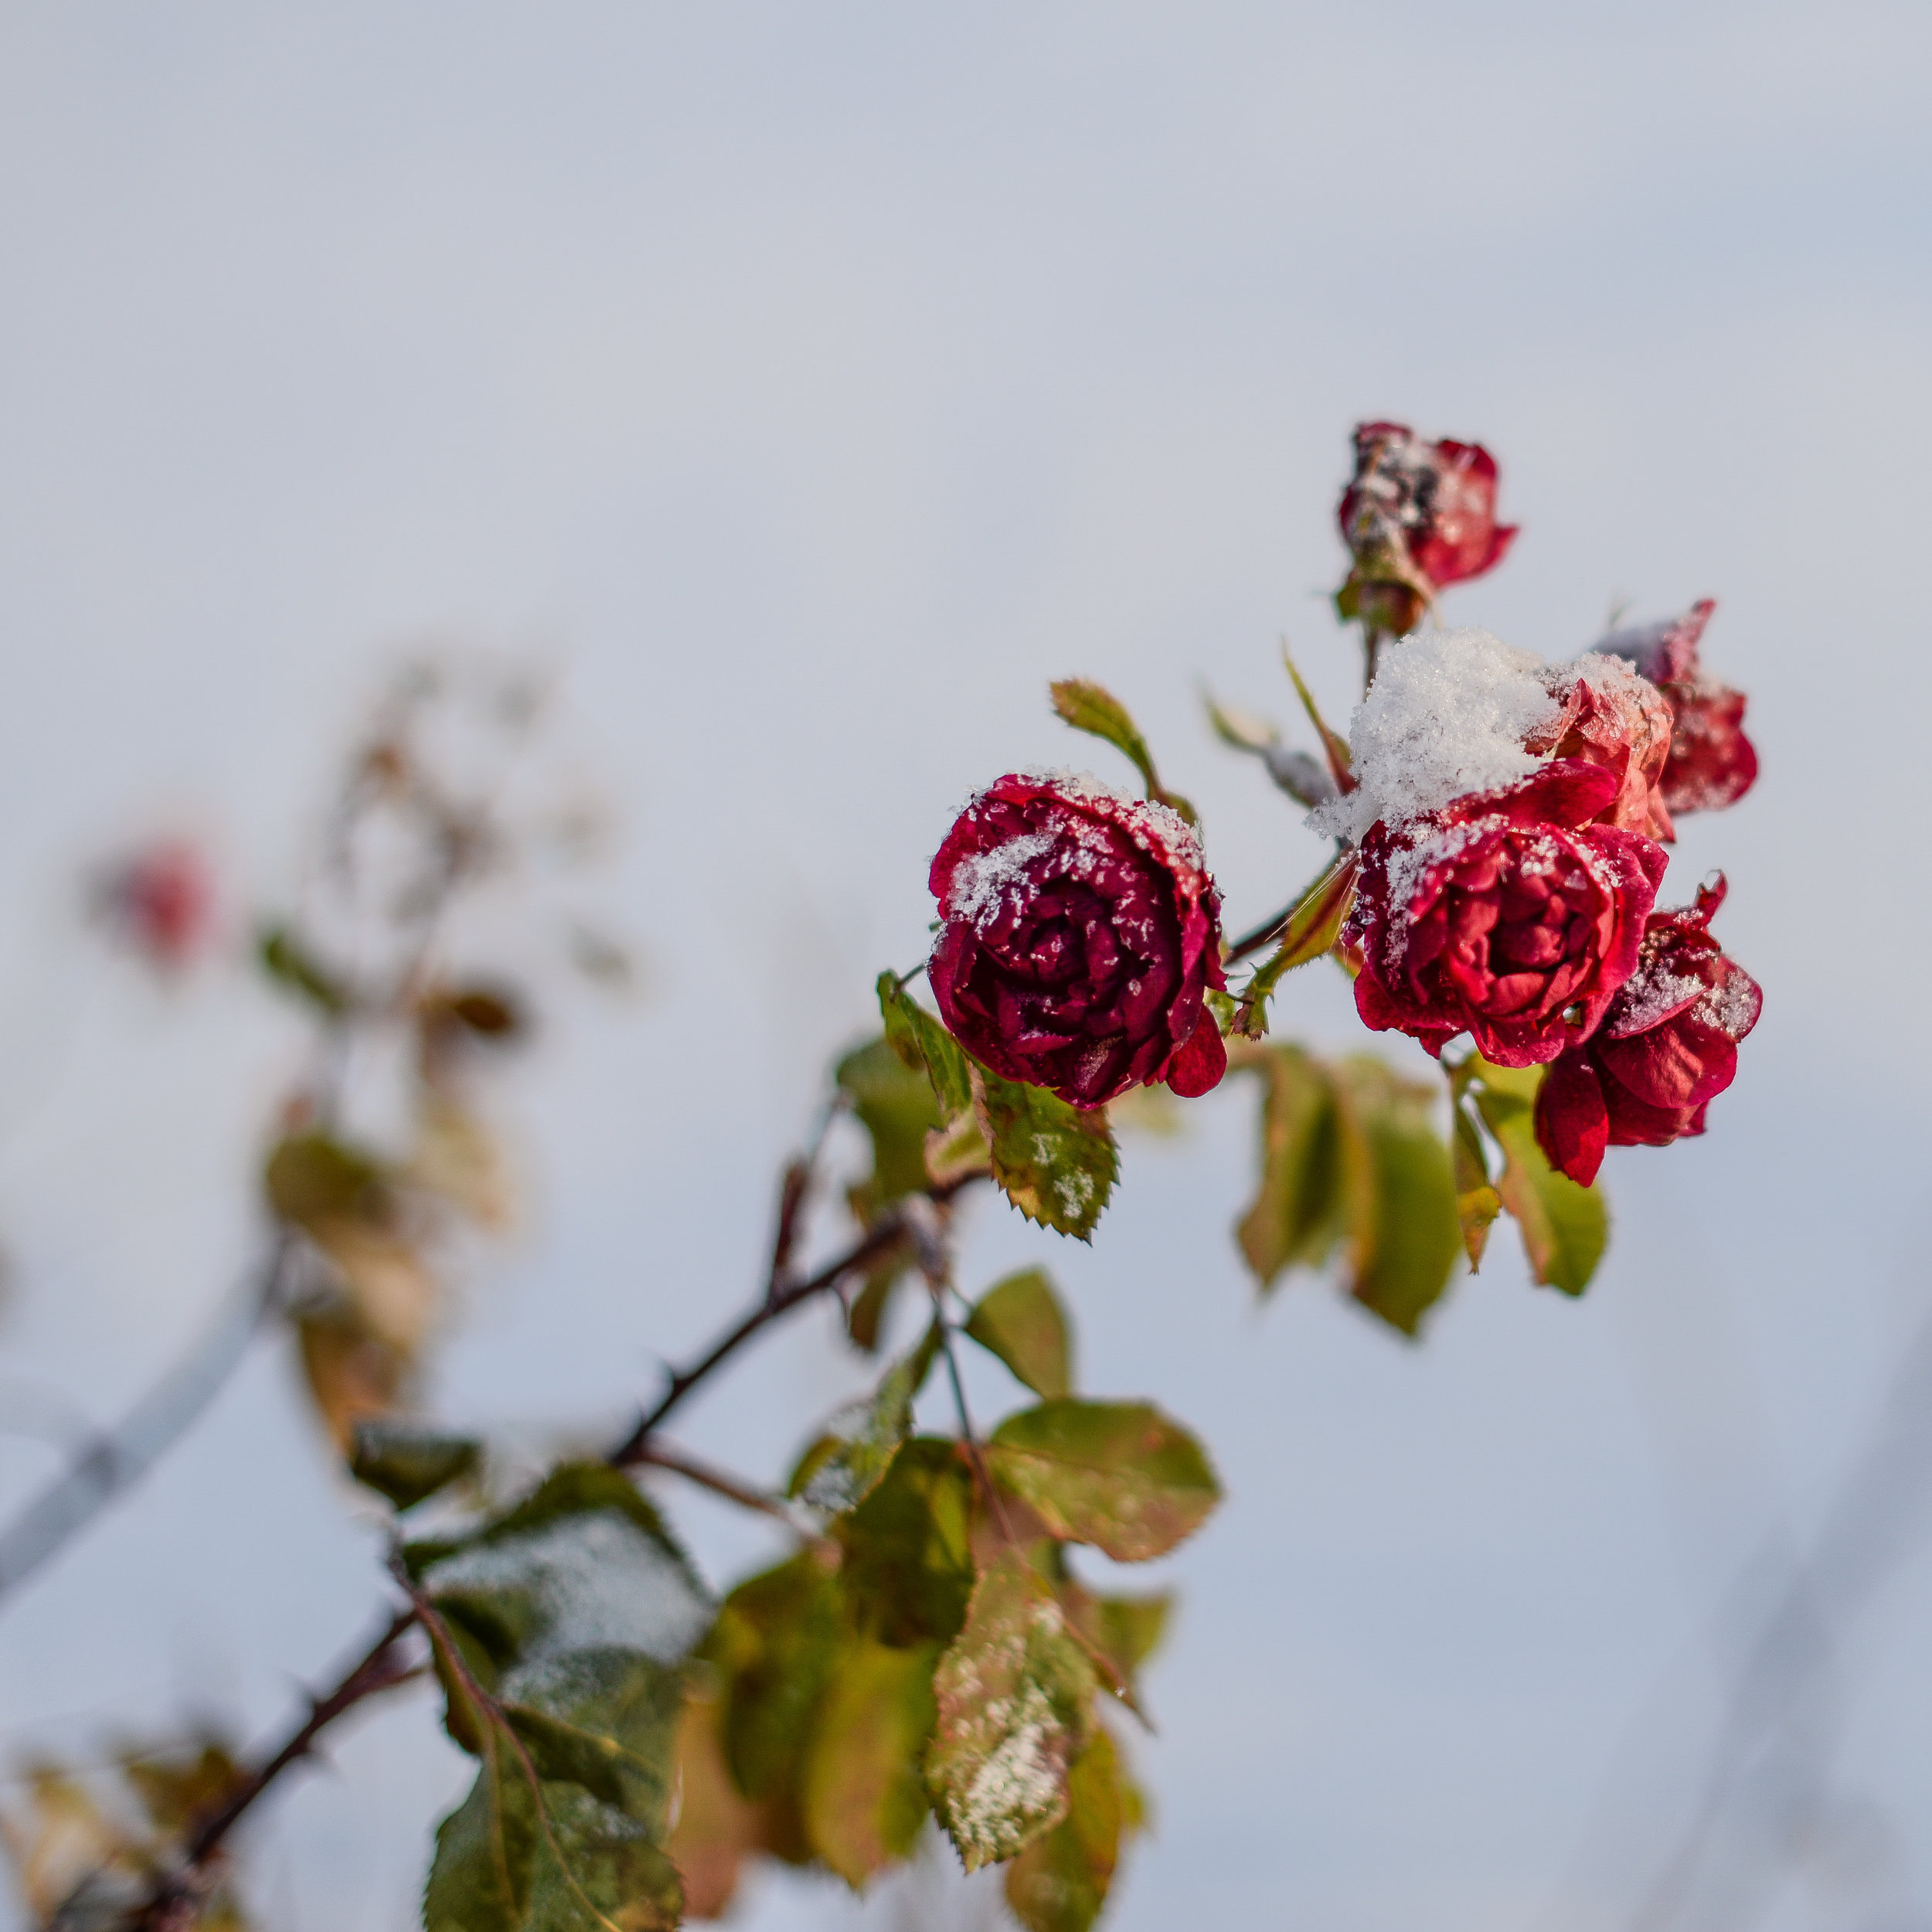 roses with snow